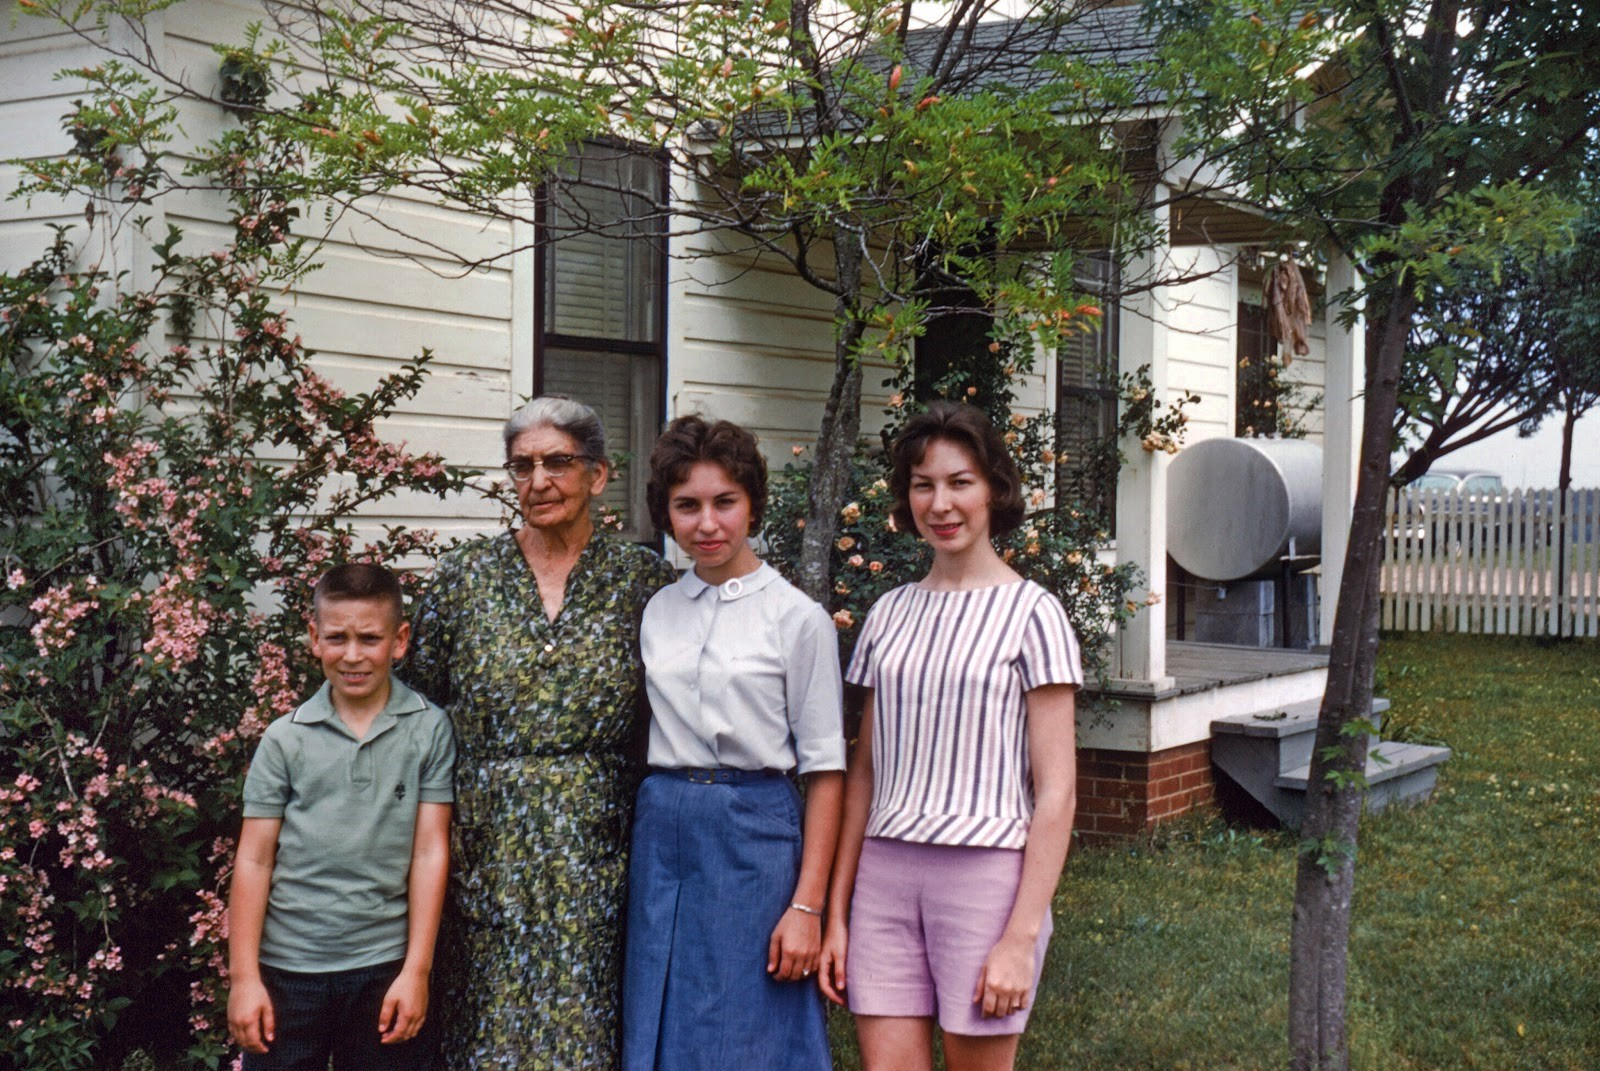 My brother, sister and I with our grandmother at her place (in the late 50s or early 60s)